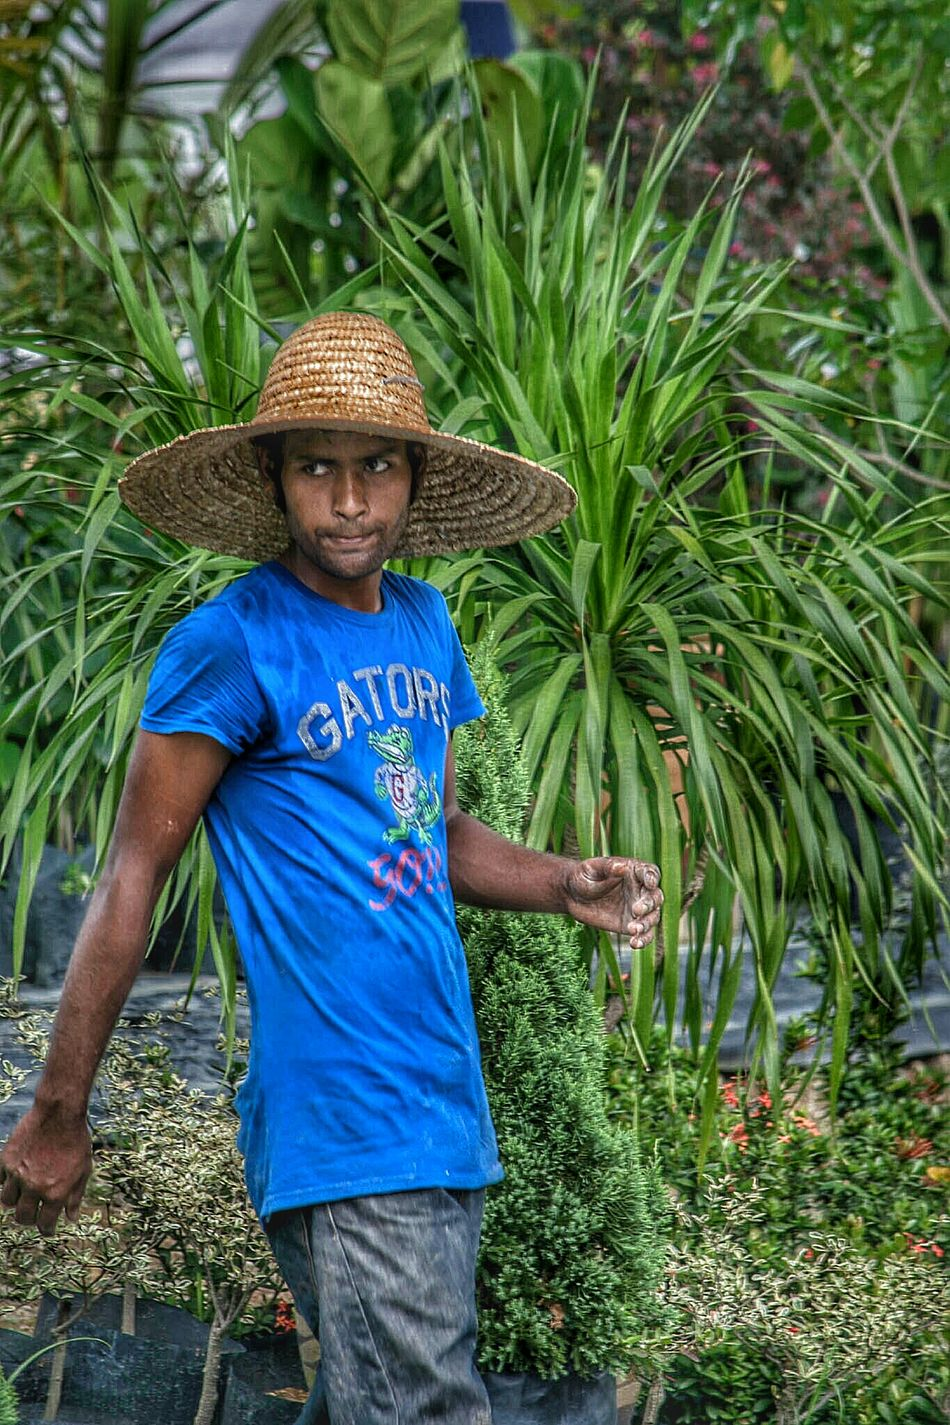 Gardener Blue Hat Straw Leaves Random People Photography Malaysia Outside Colors People Watching Person Working Gardening Worker Sun Hat Sombrero Straw Hat Hats Sungai Buloh Flower Grower Horticulturist Looking To The Other Side